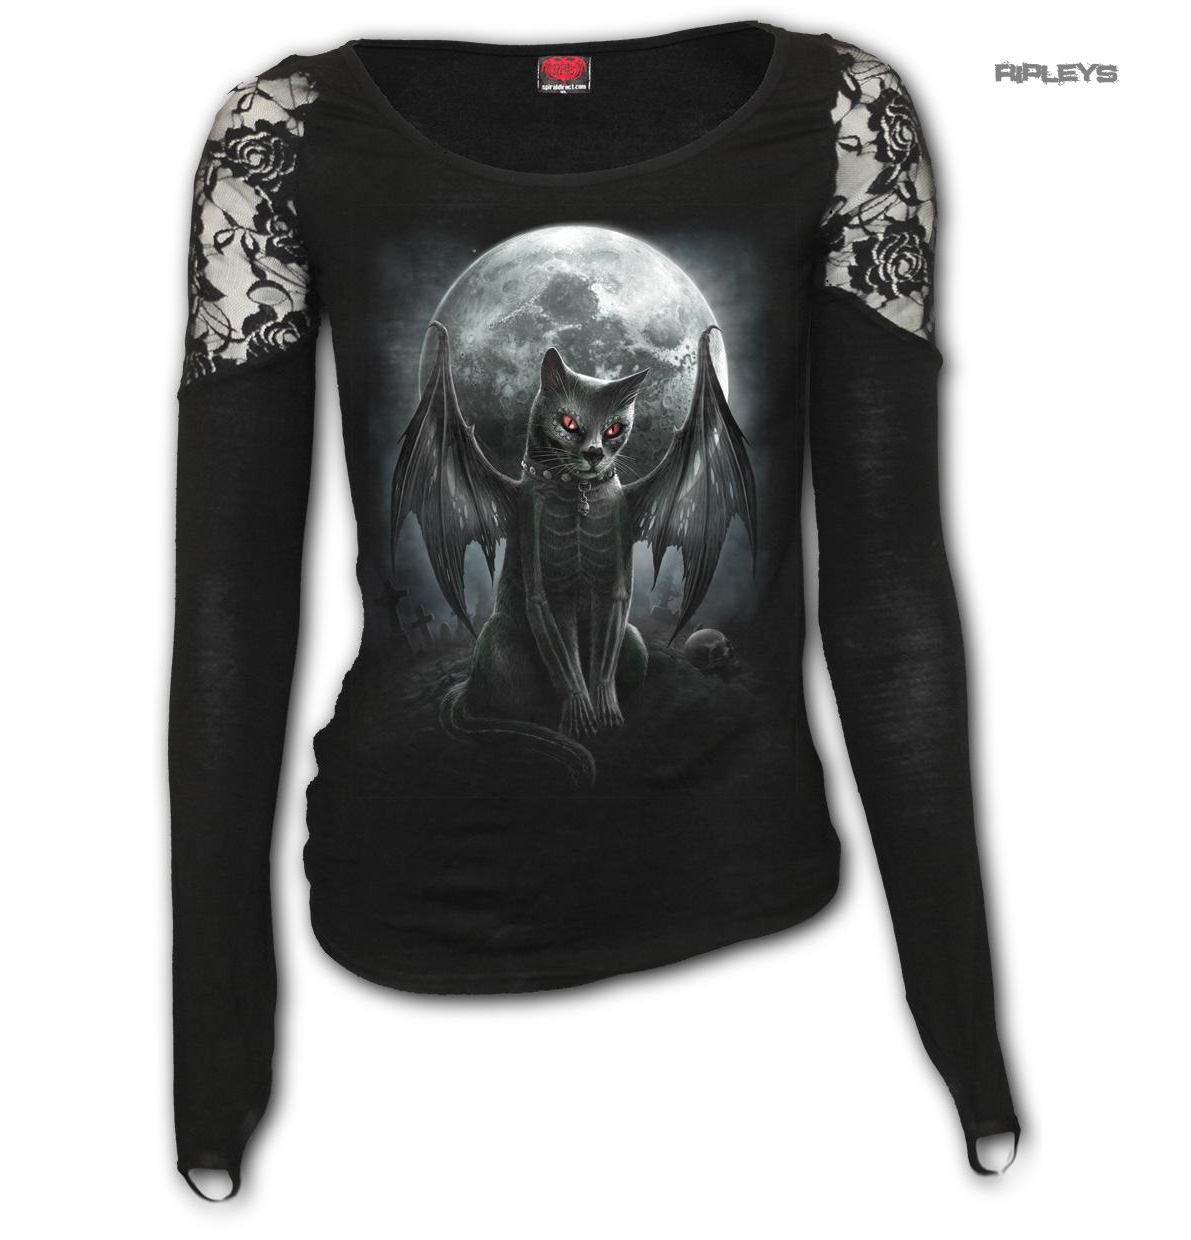 Spiral-Direct-Ladies-Gothic-Black-Top-Vampire-VAMP-CAT-L-Sleeve-Lace-All-Sizes thumbnail 6